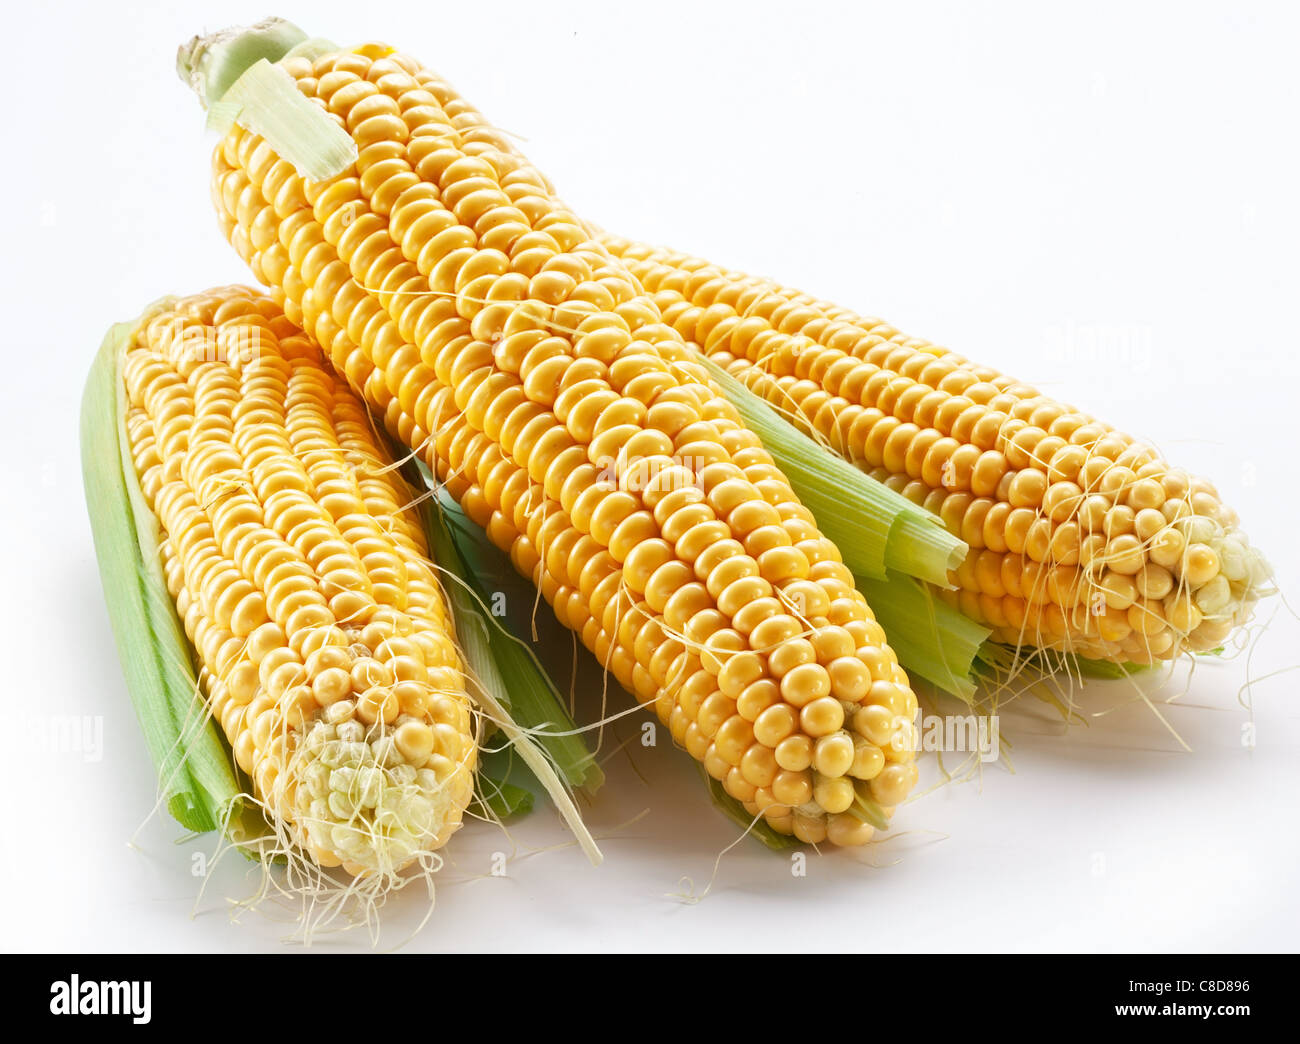 Corn on a white background - Stock Image